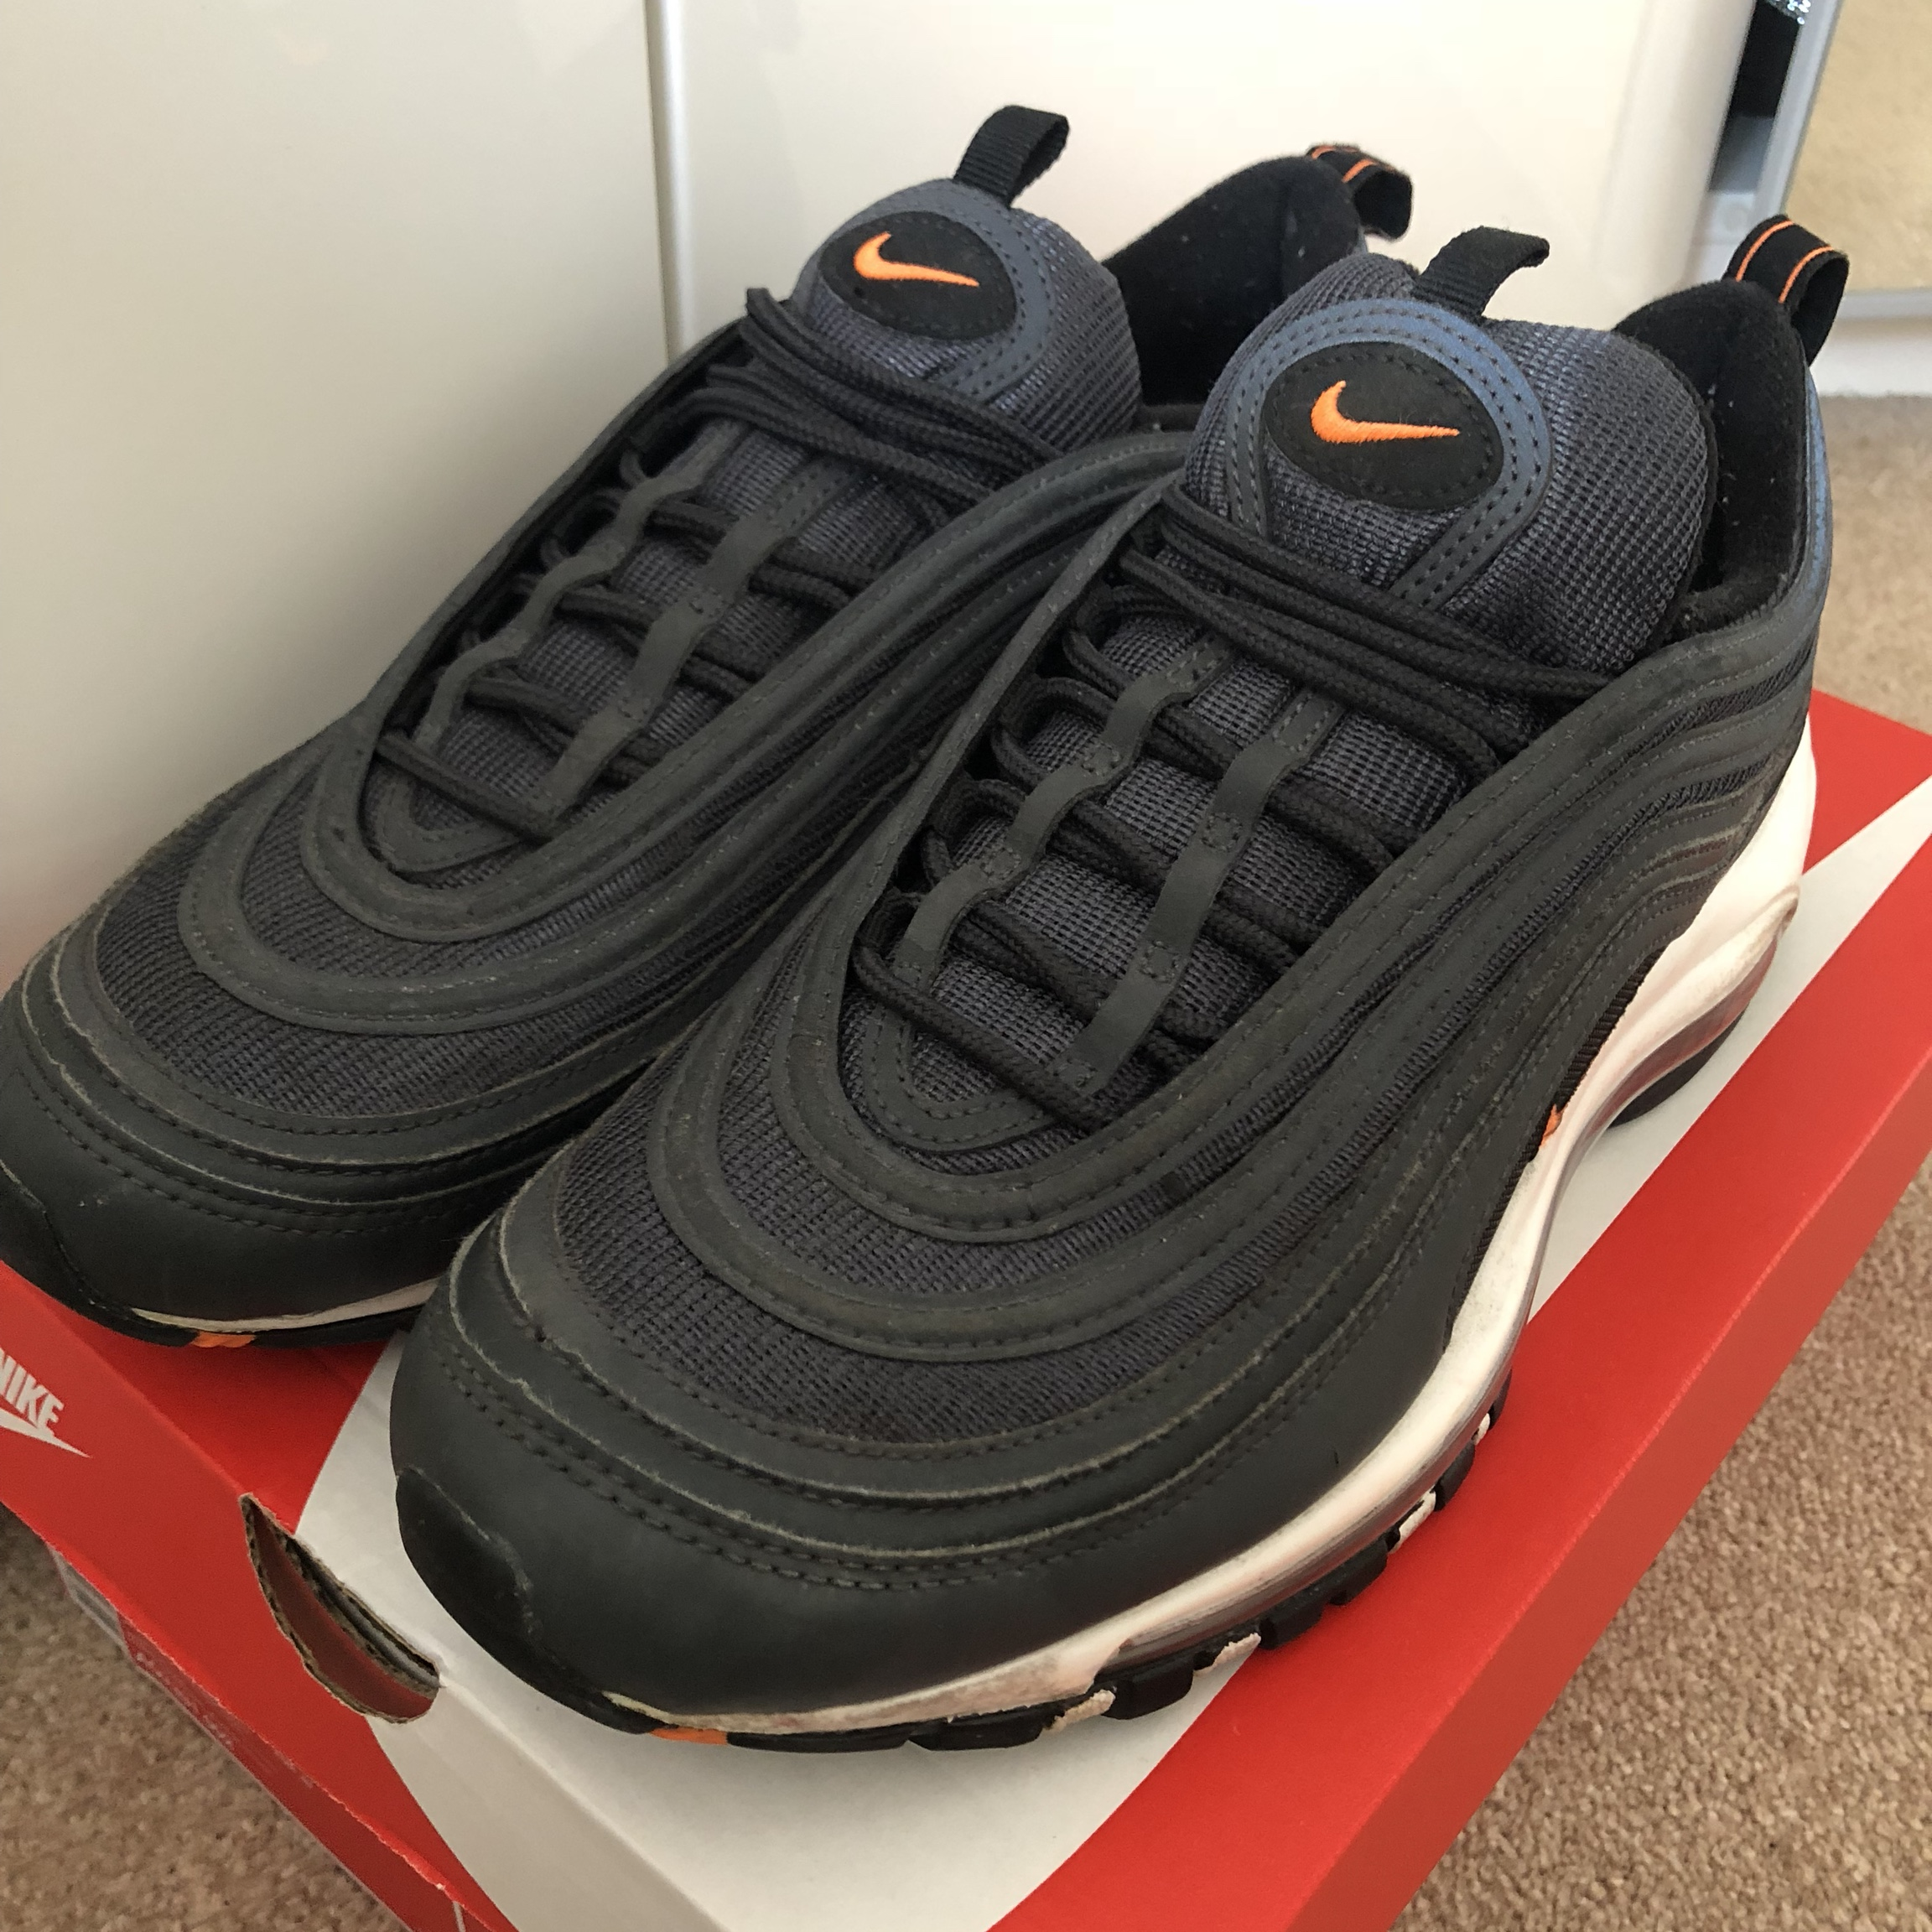 Nike Air Max 97 Anthracitetotal Orange Black Depop